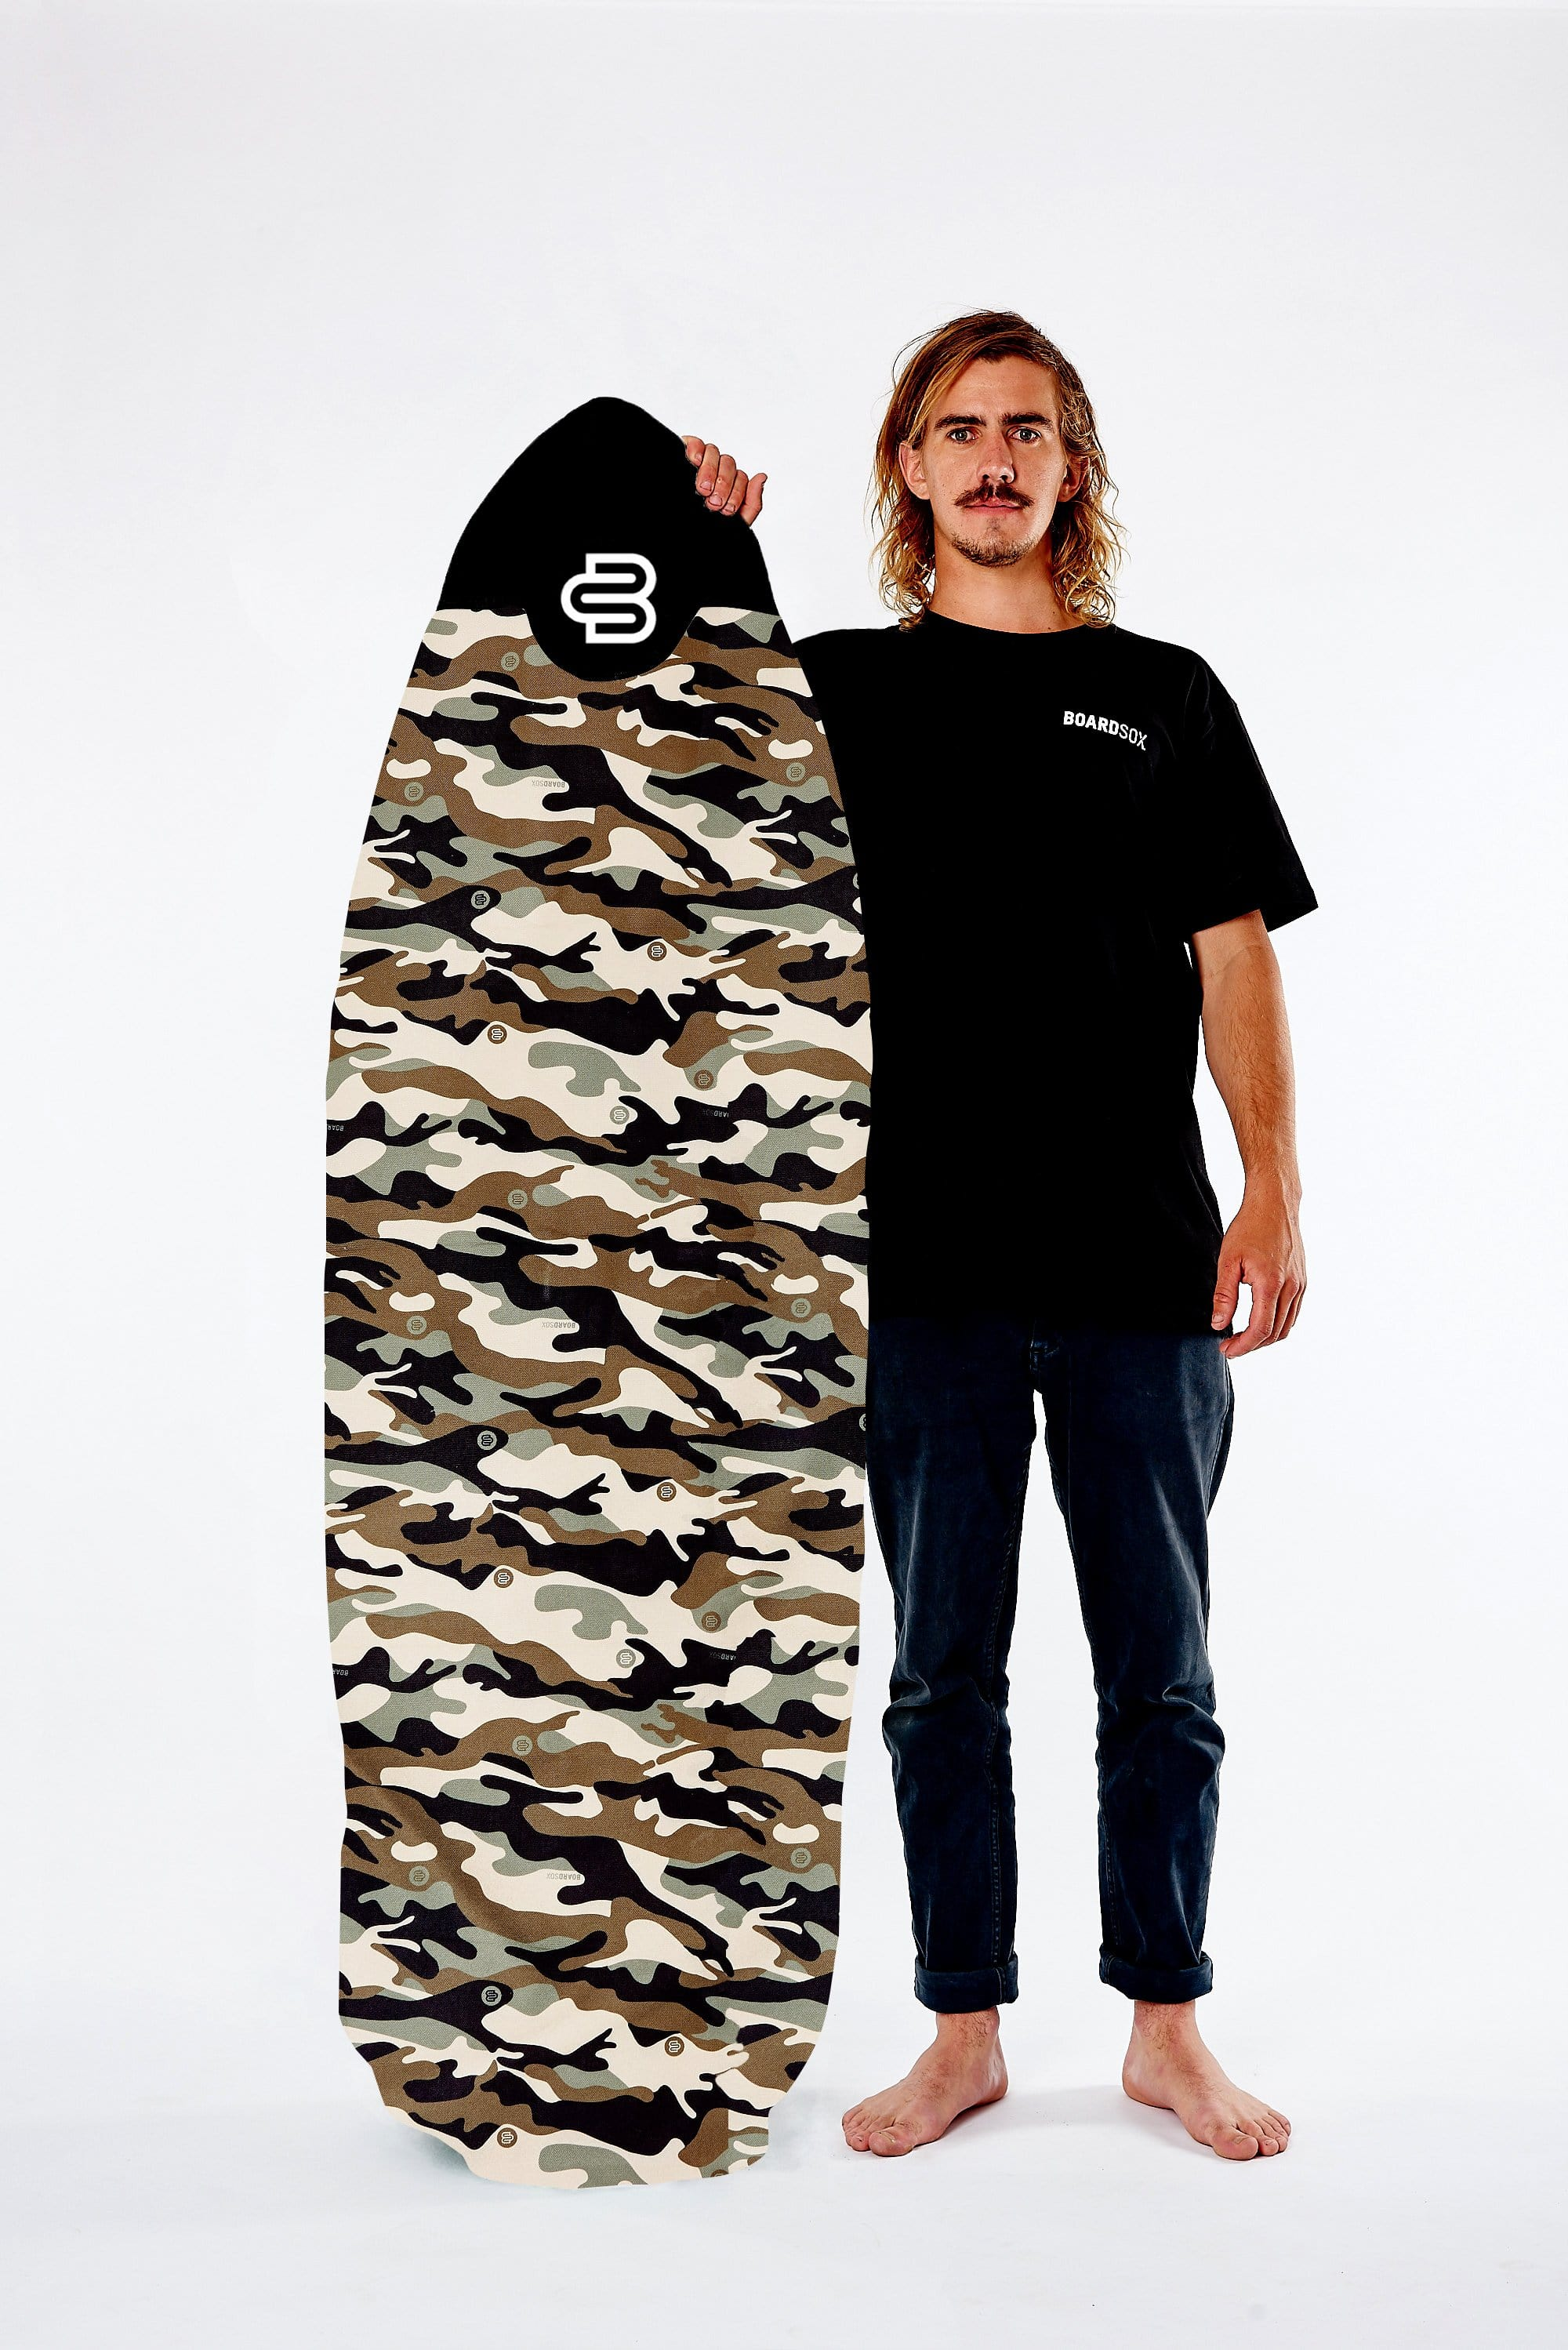 Camo Boardsox® Fun/Hybrid Surfboard Cover